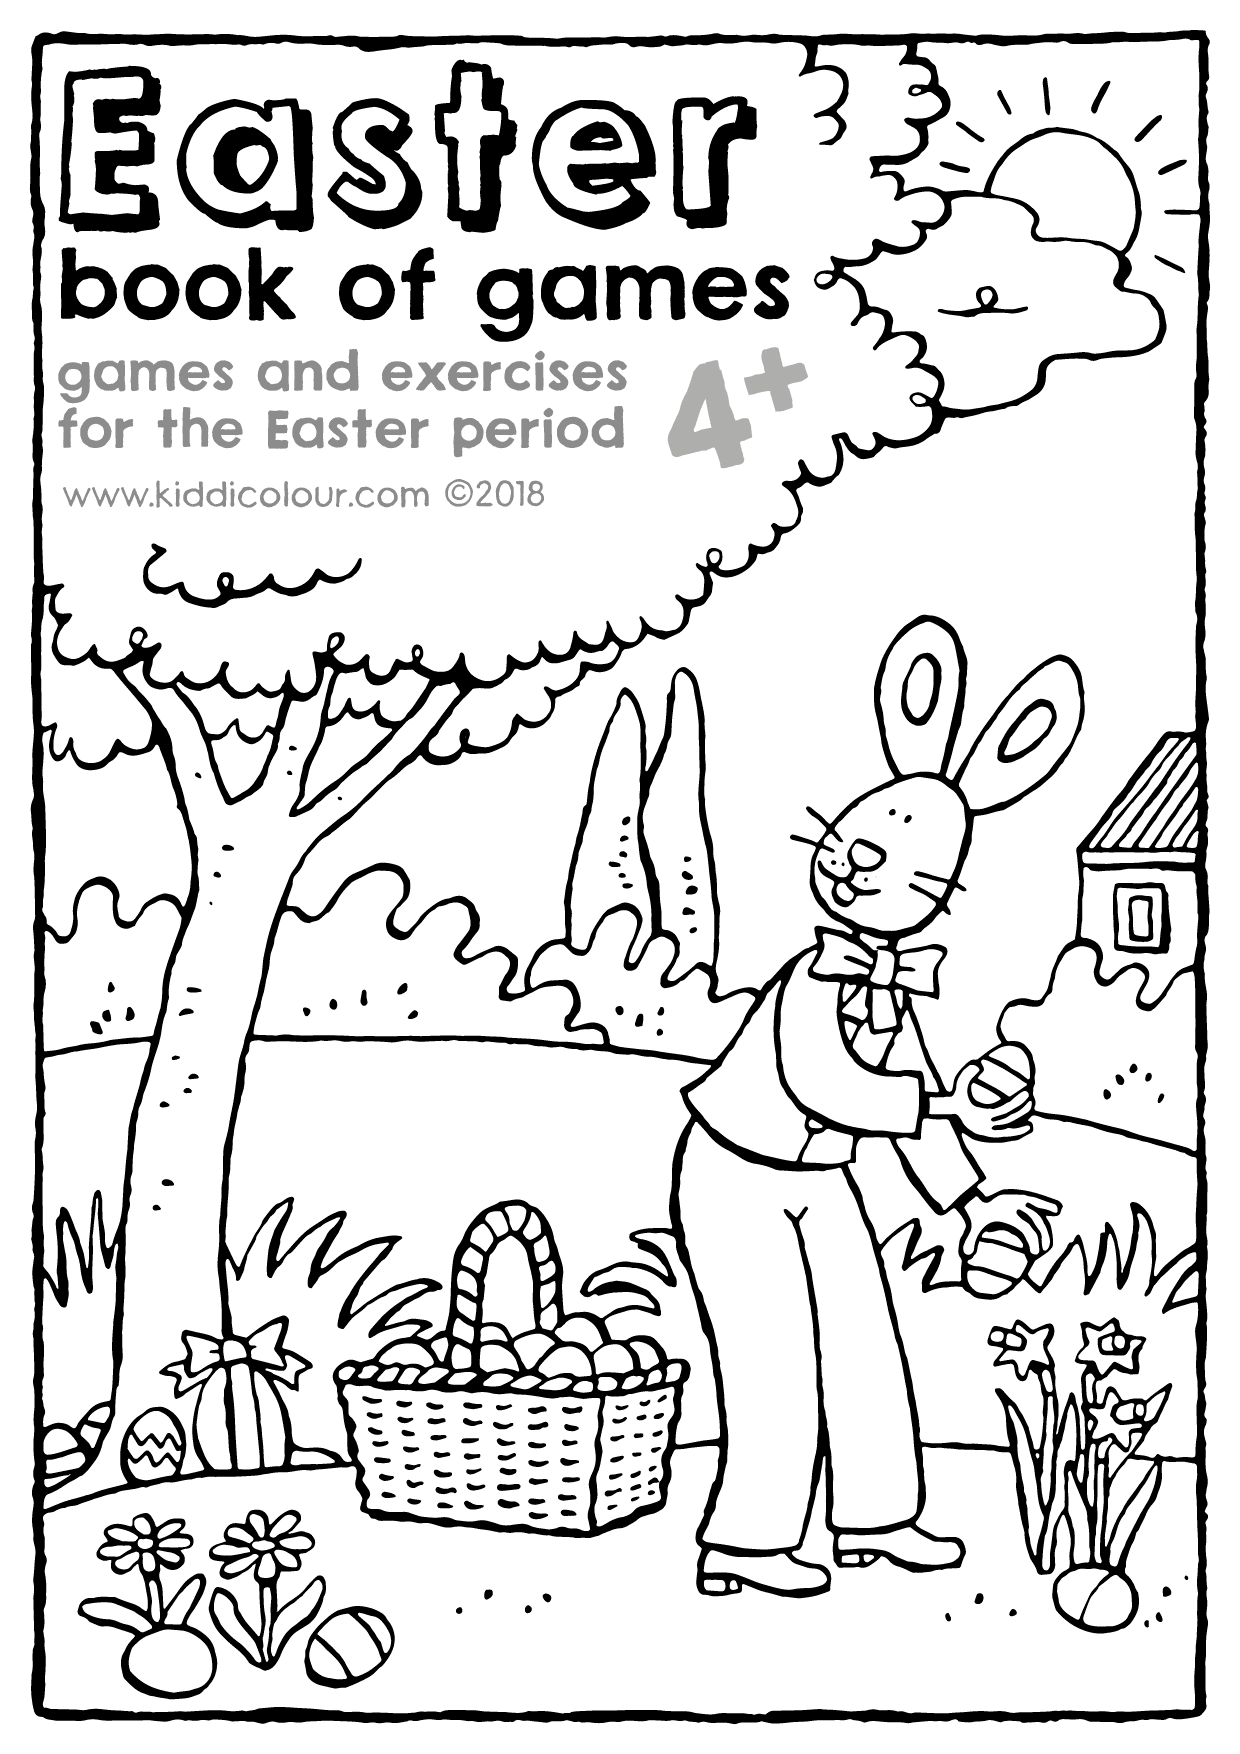 Easter book of games 4+